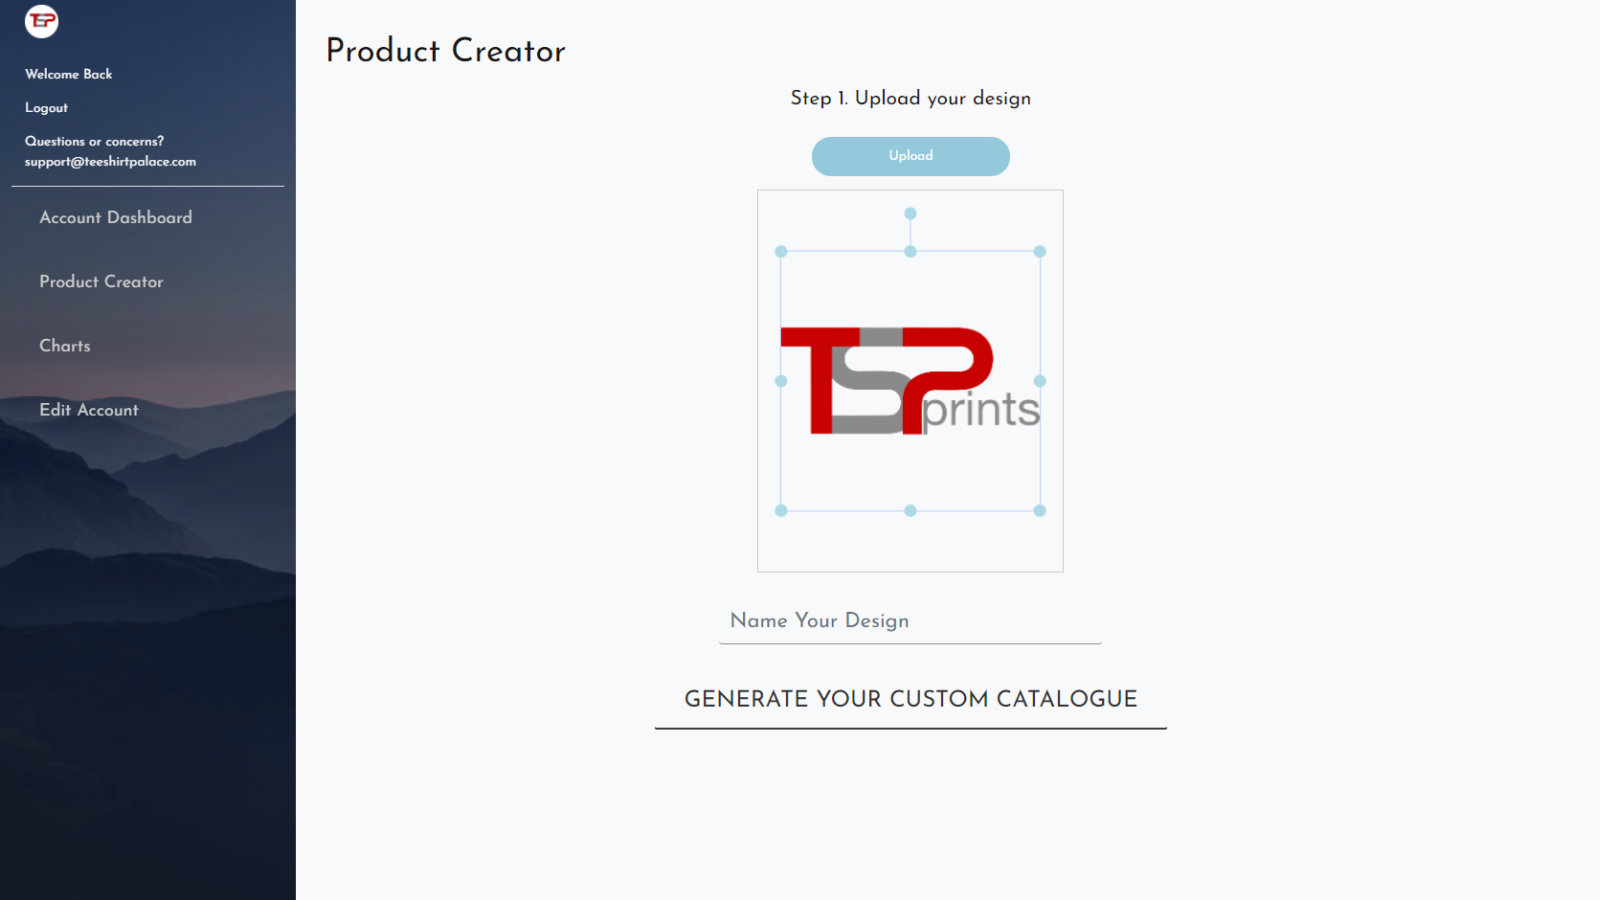 Easily Upload Your Design